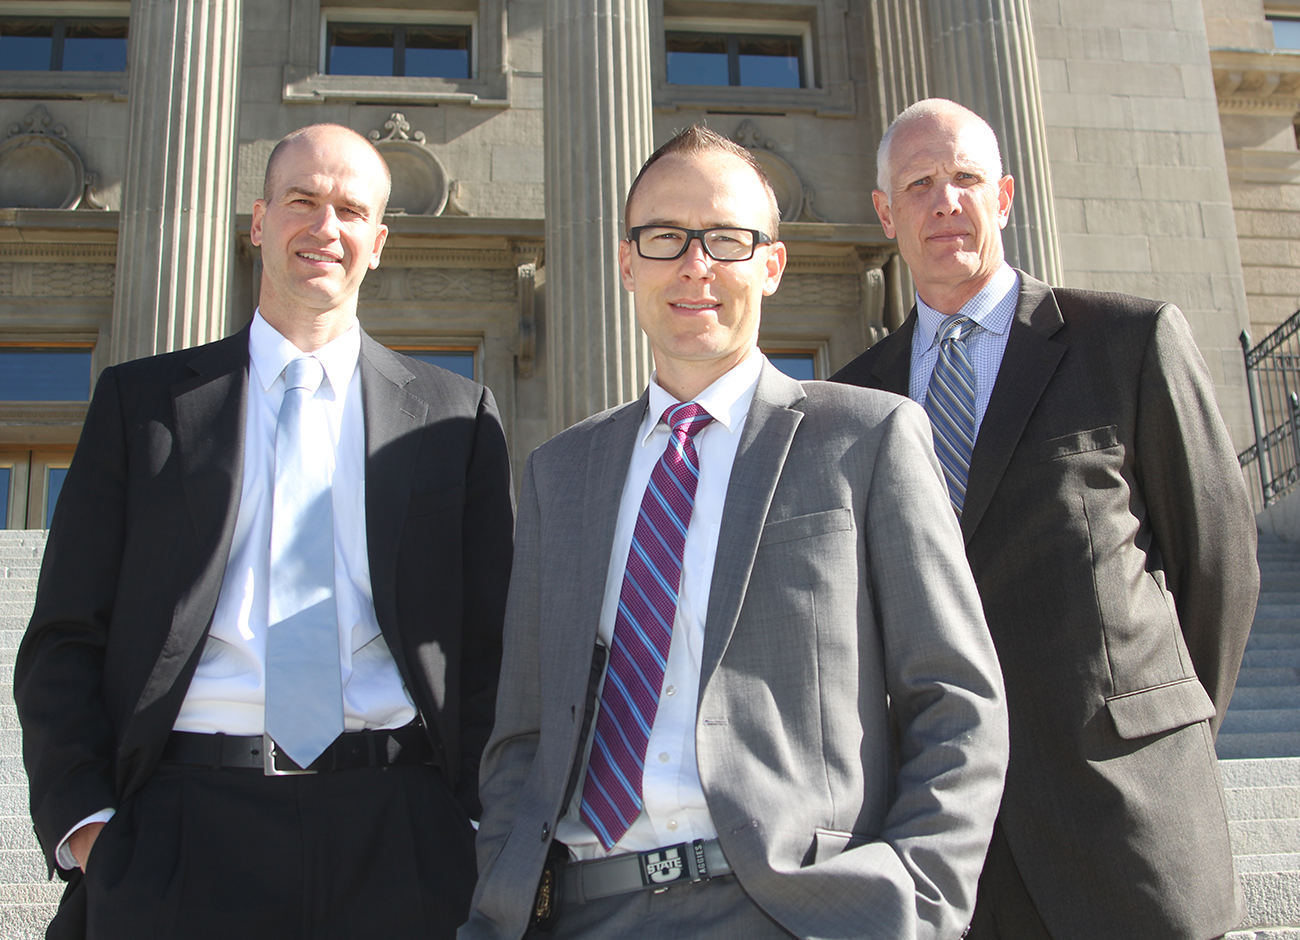 three fbi agents standing on the steps to the Idaho State Capitol Building